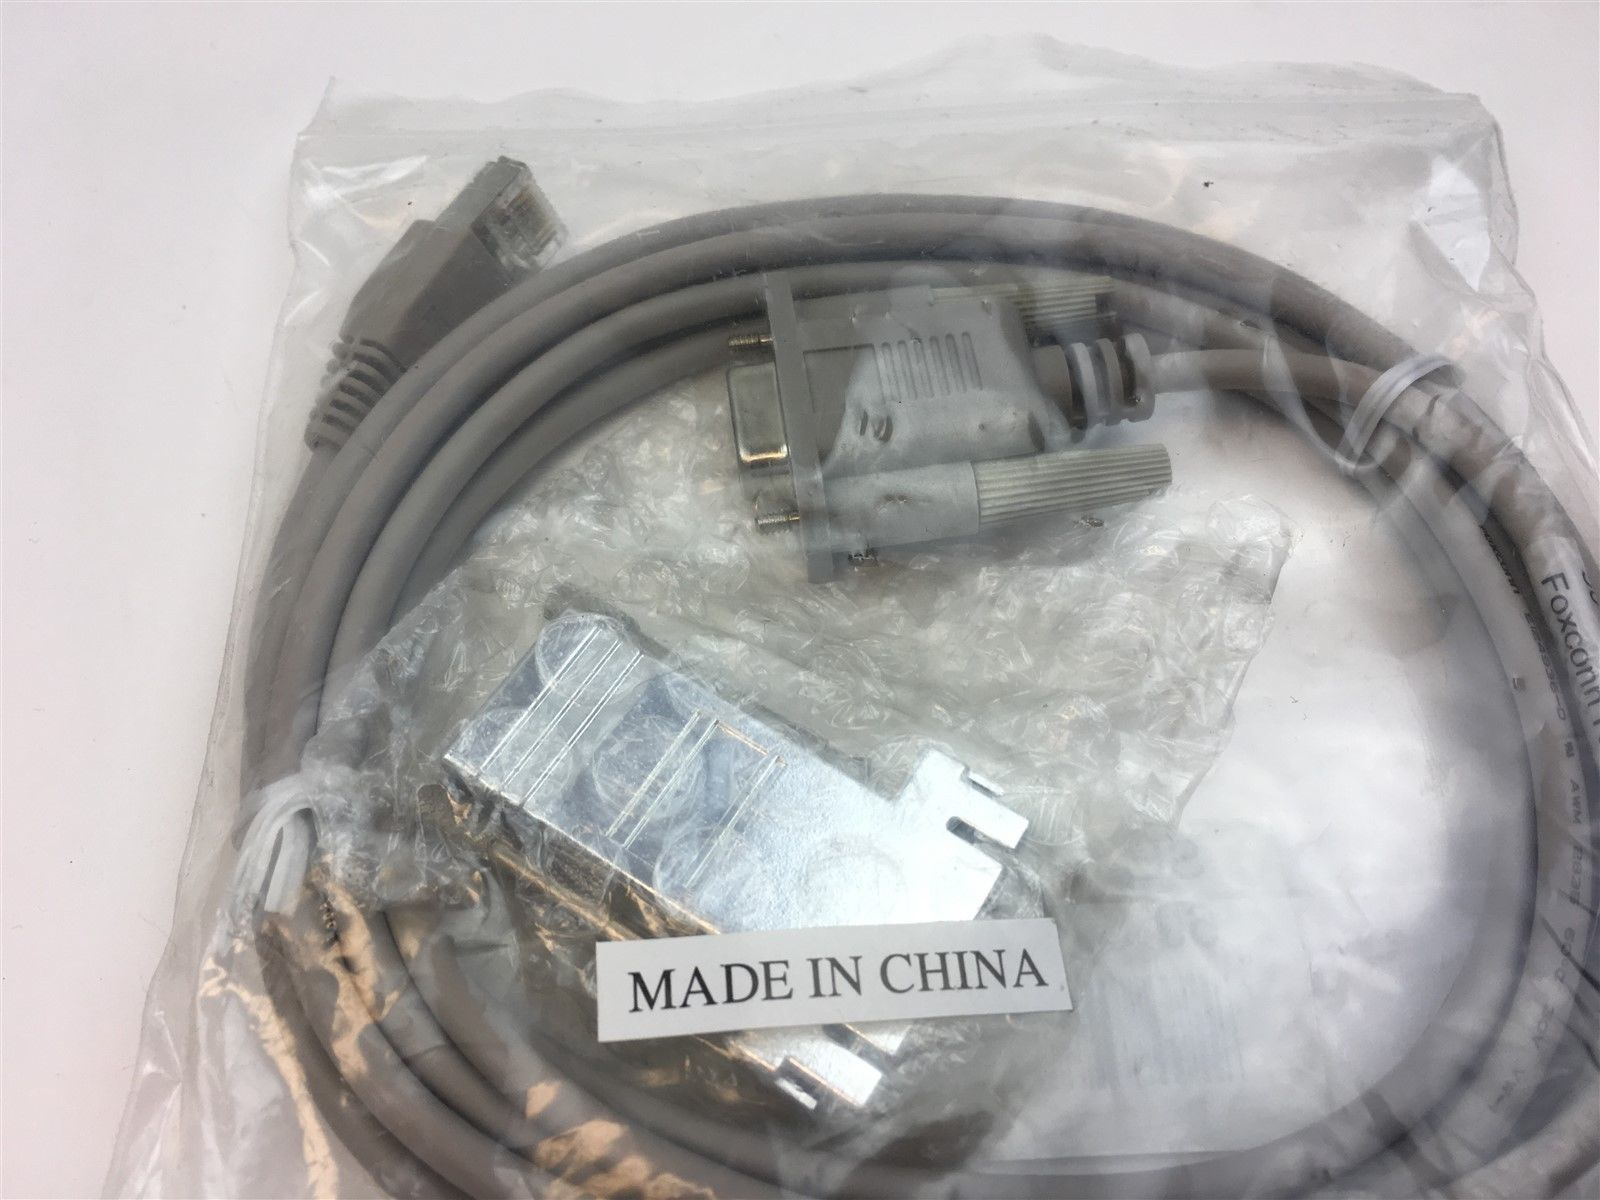 60-0000890-02 Serial 9-pin Female F to TP RJ45 Console Cable New